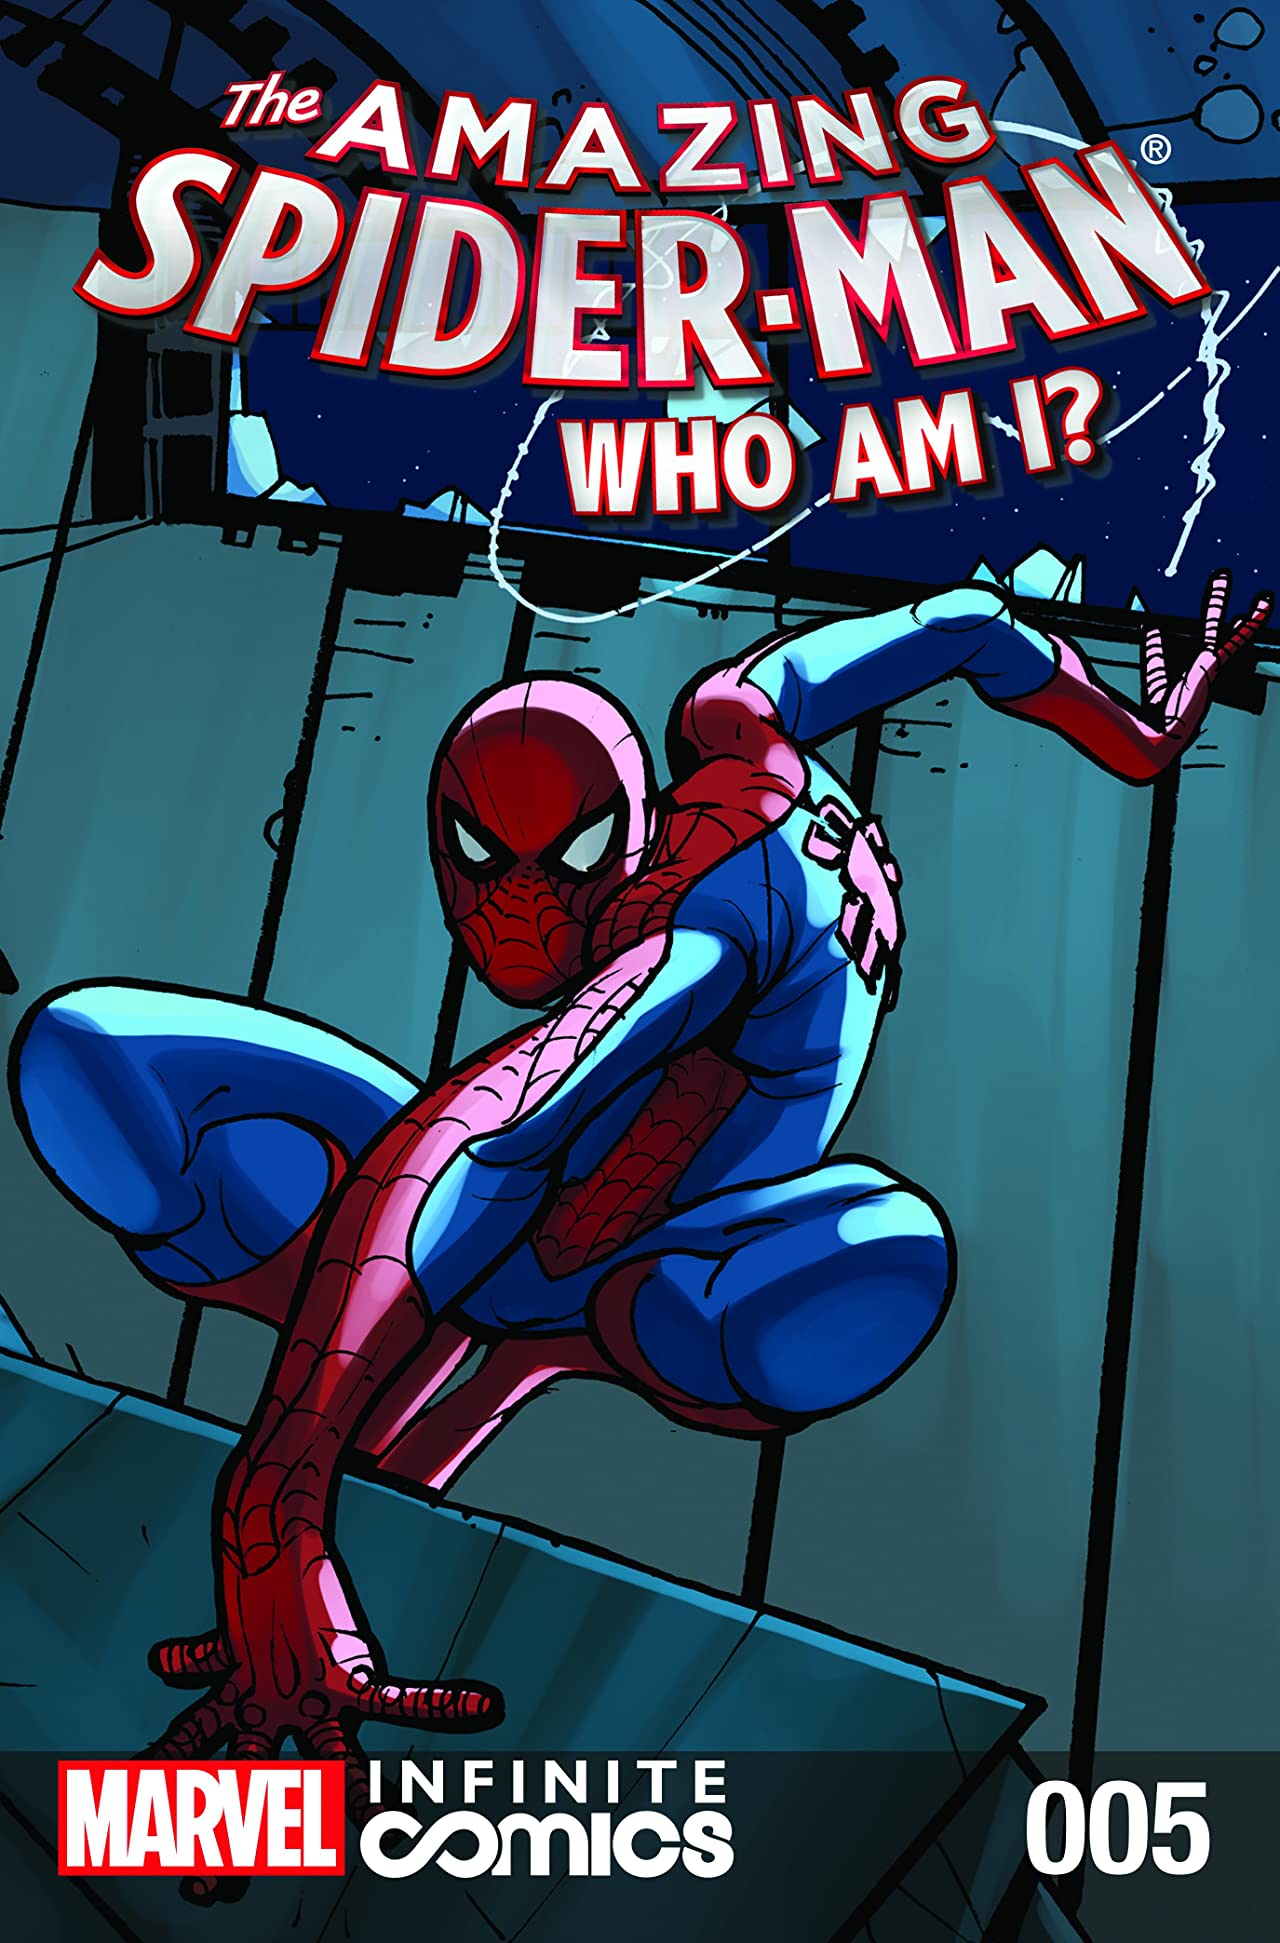 Amazing Spider-Man: Who Am I? Infinite Digital Comic #5